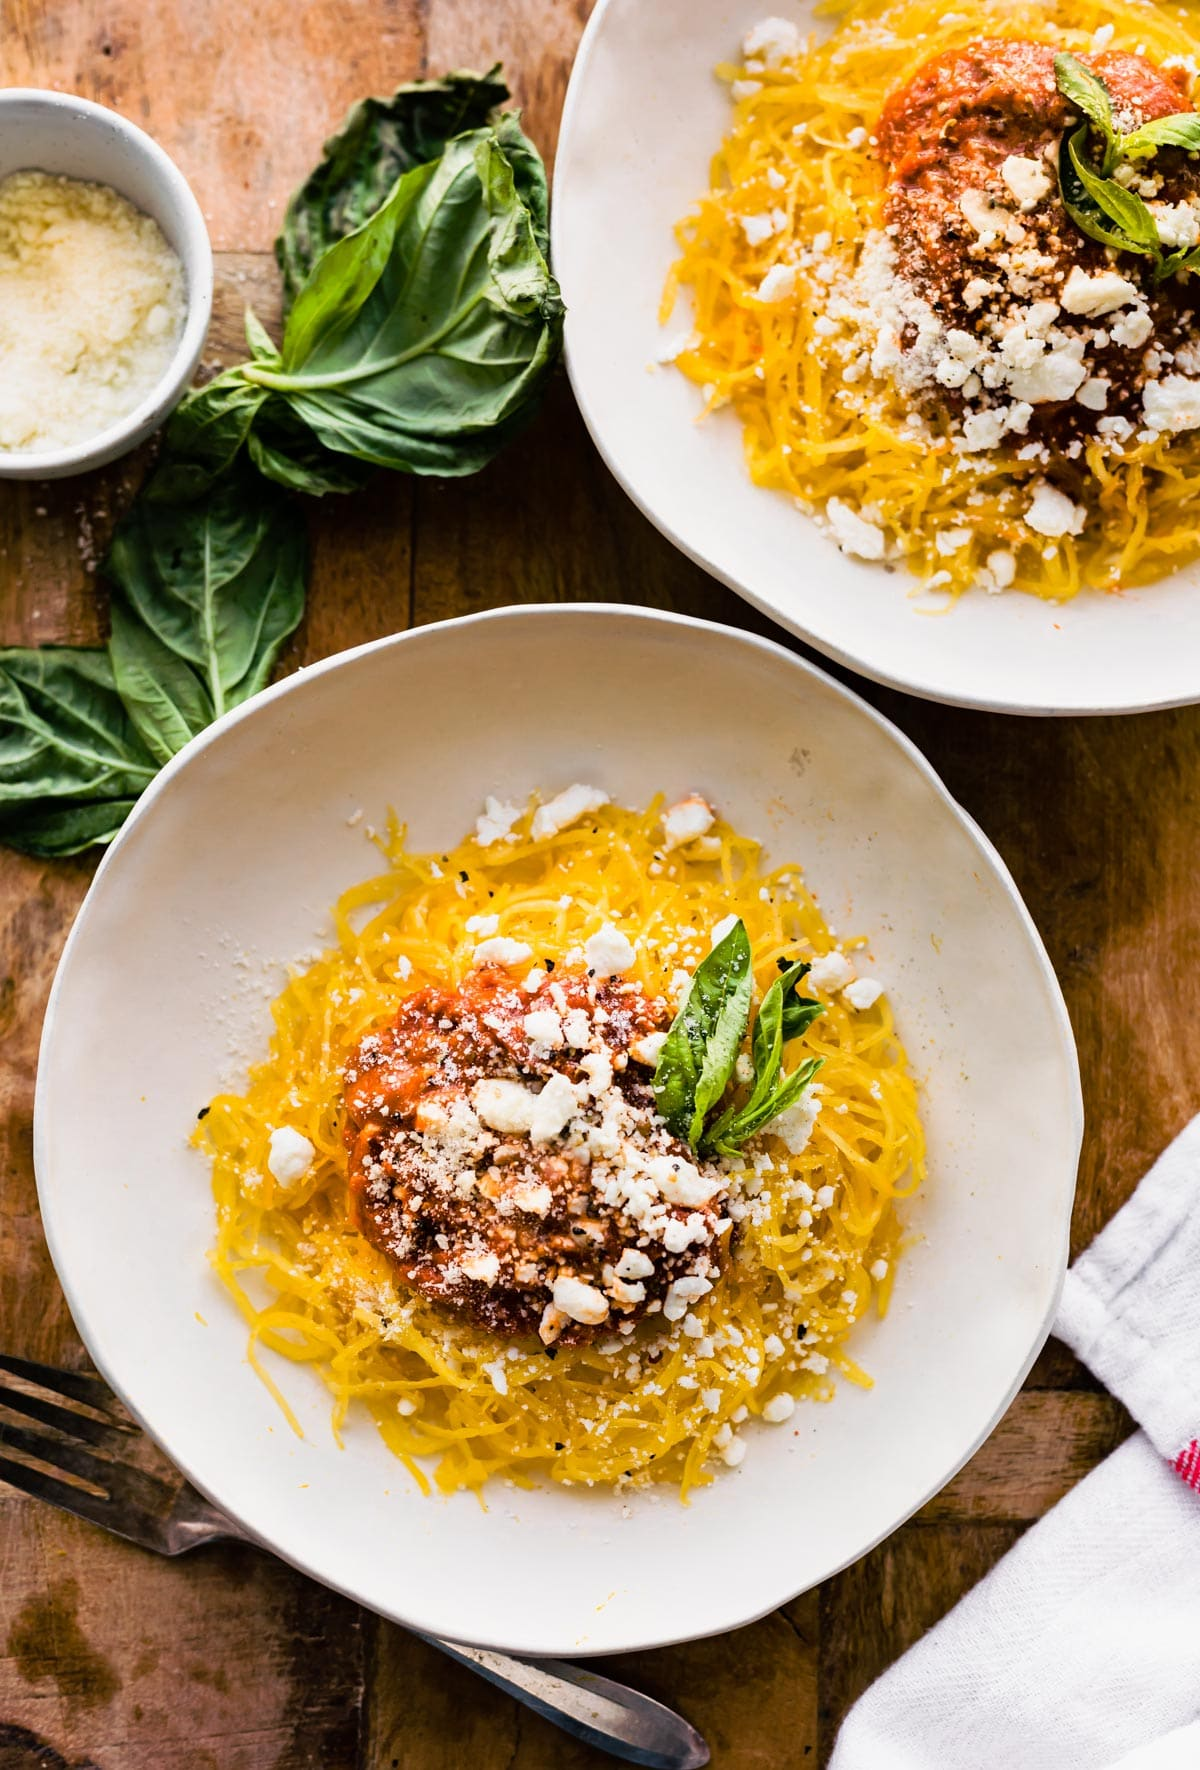 overhead: 2 plates of spaghetti squash pasta topped with tomato sauce alternative